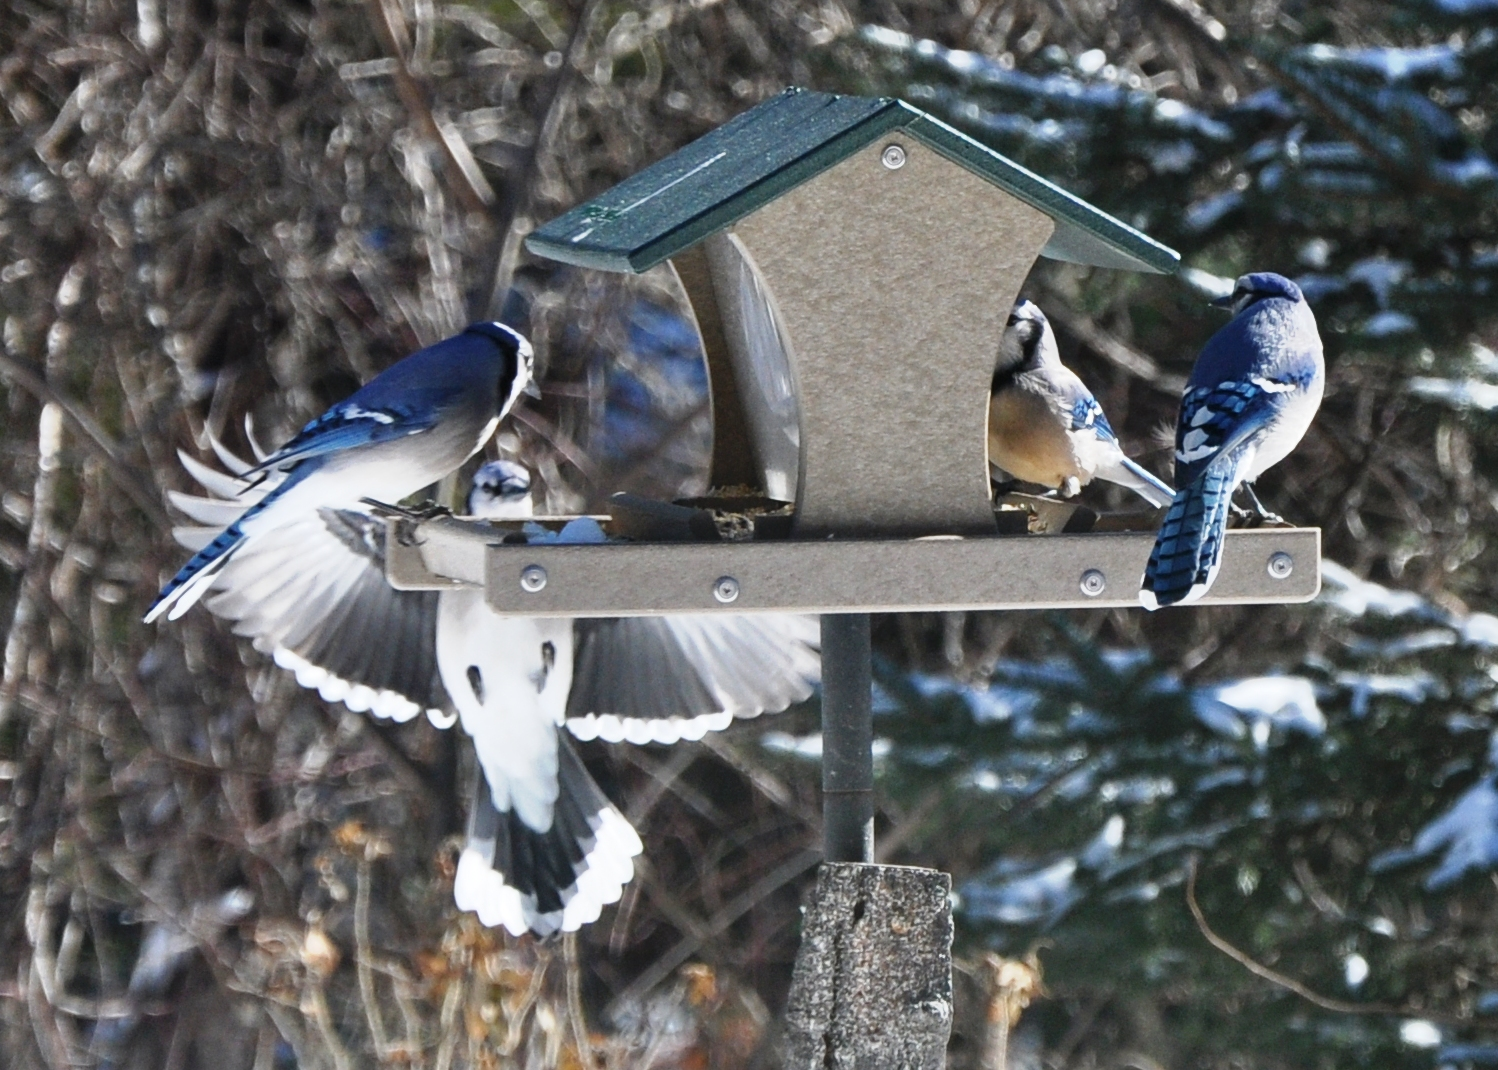 bird tend feeders area feeding to beneath in jay ragweed but tree the visit will blue open from mounted barrens apple away next birds shy feeder they